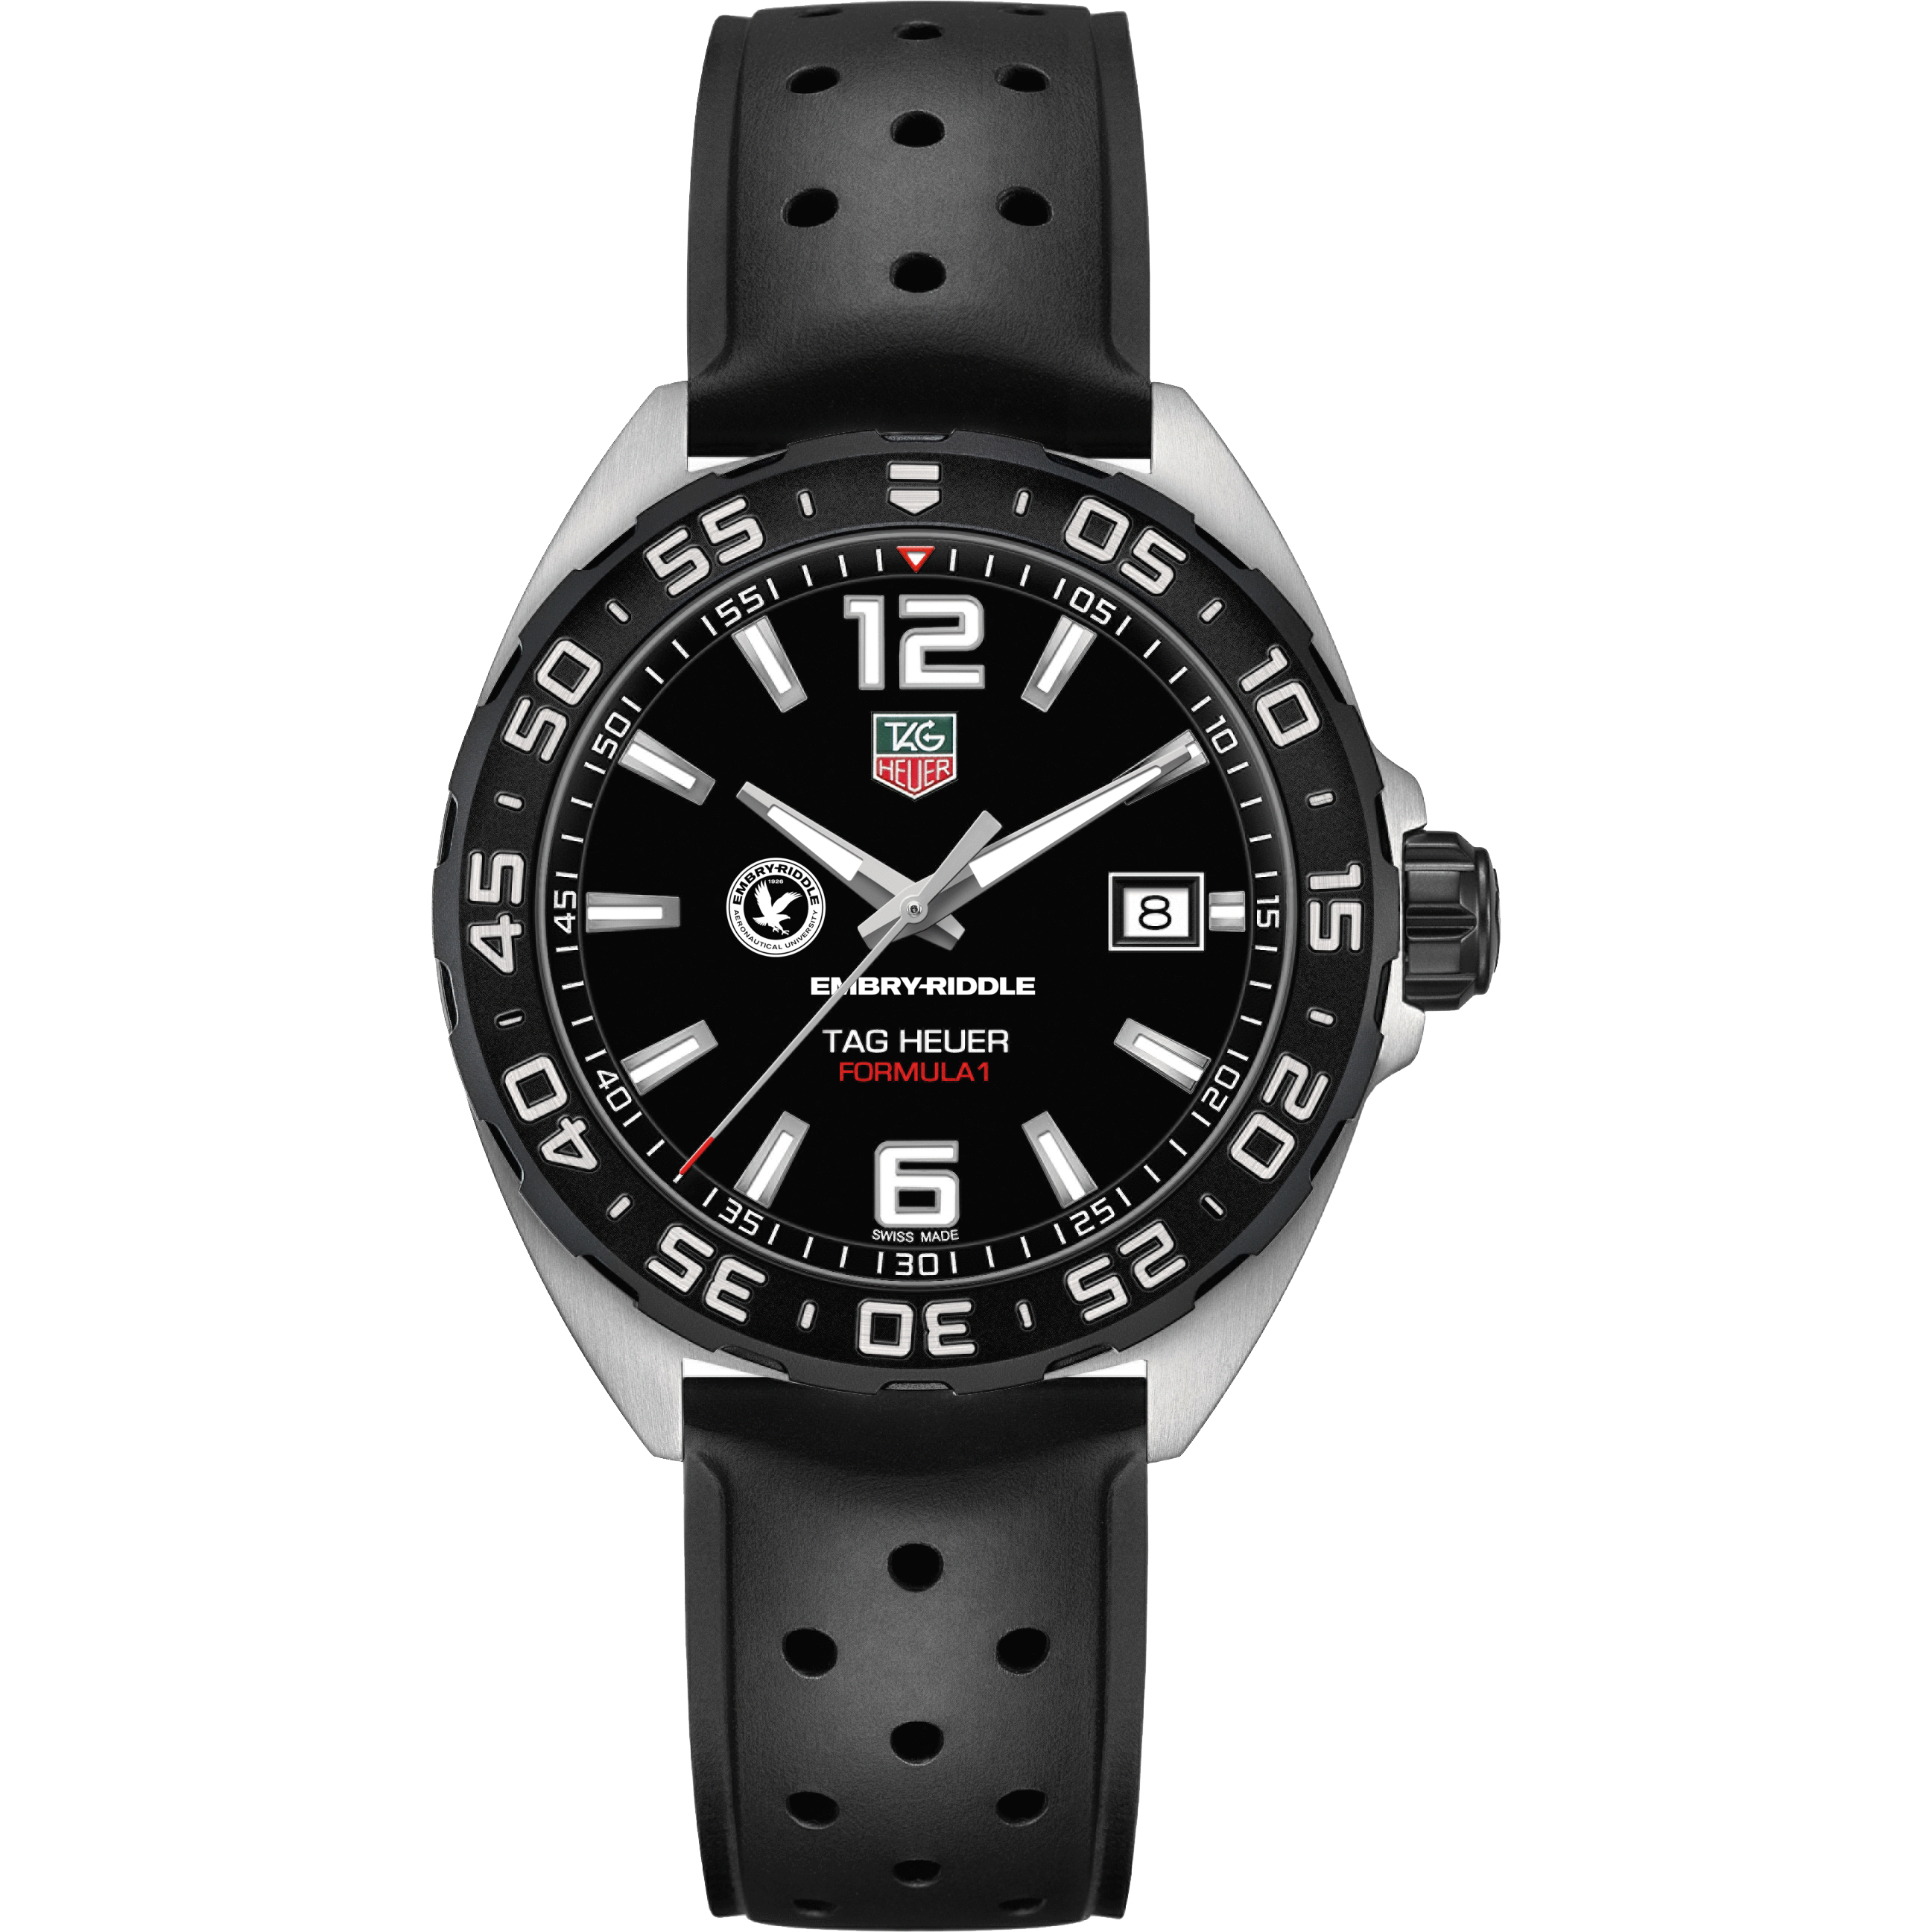 Embry-Riddle Men's TAG Heuer Formula 1 with Black Dial - Image 2